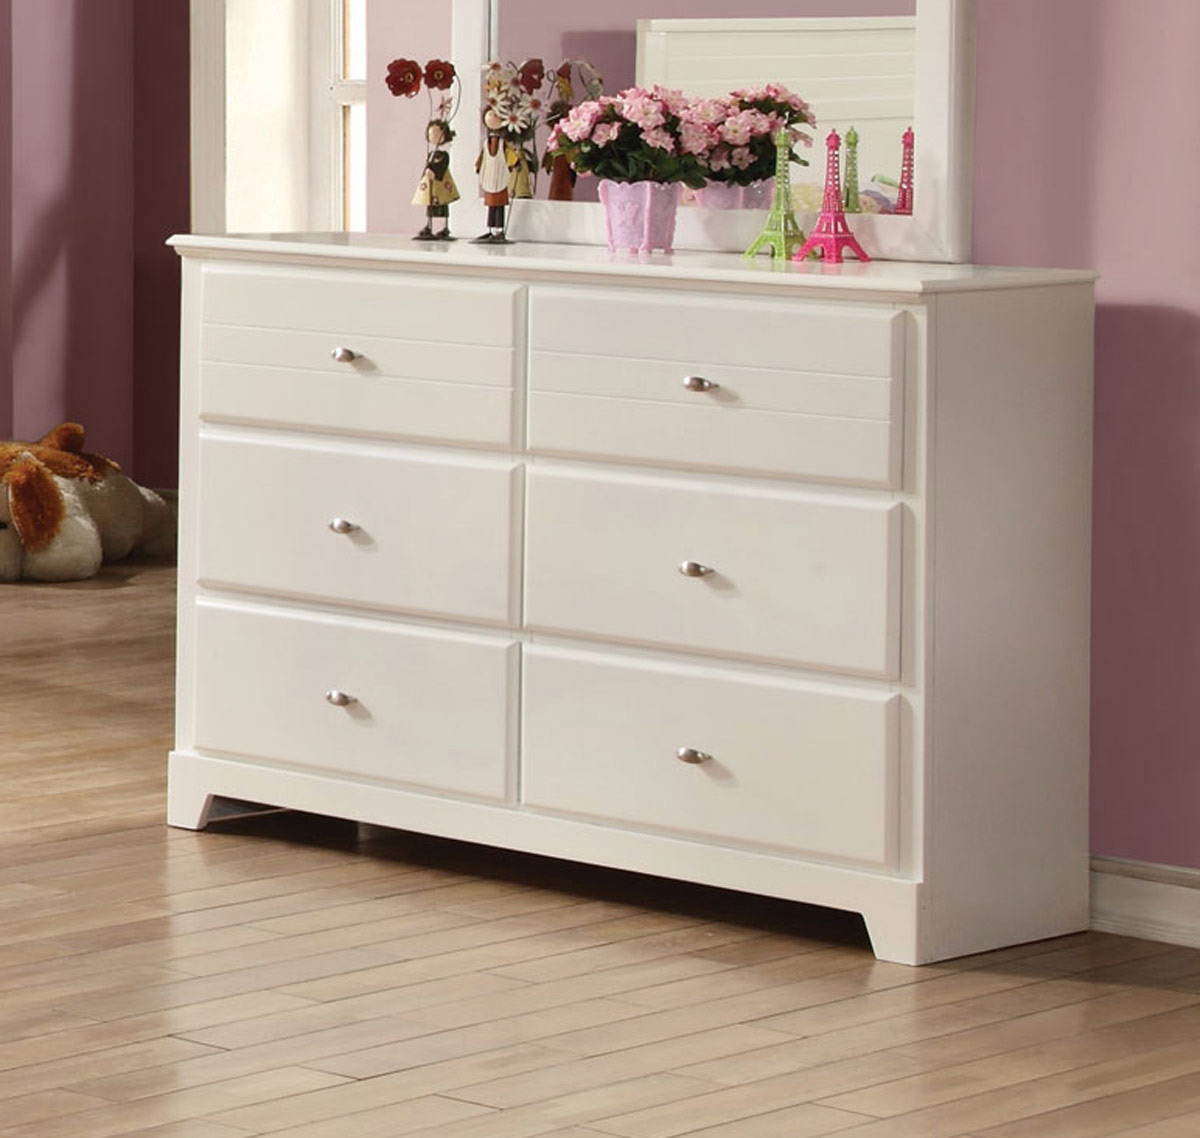 Coaster Ashton Dresser - White